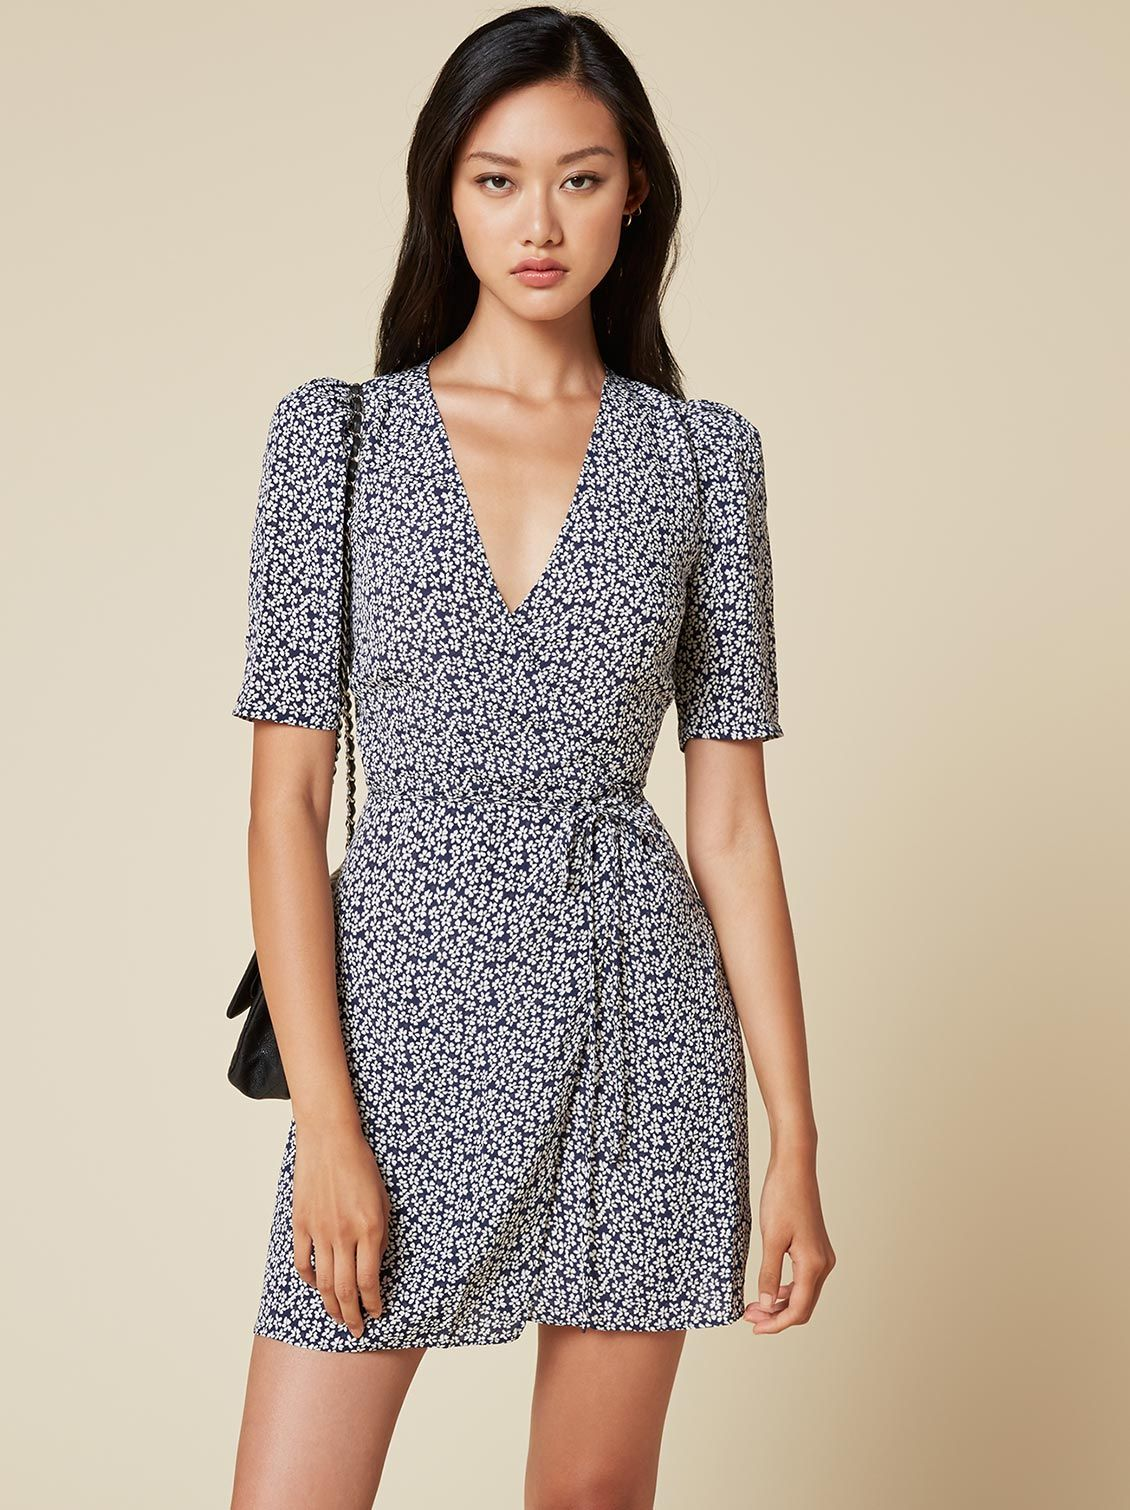 9615b4ddceda Marita dress dogwood by Reformation | fashion, bitches in 2019 ...